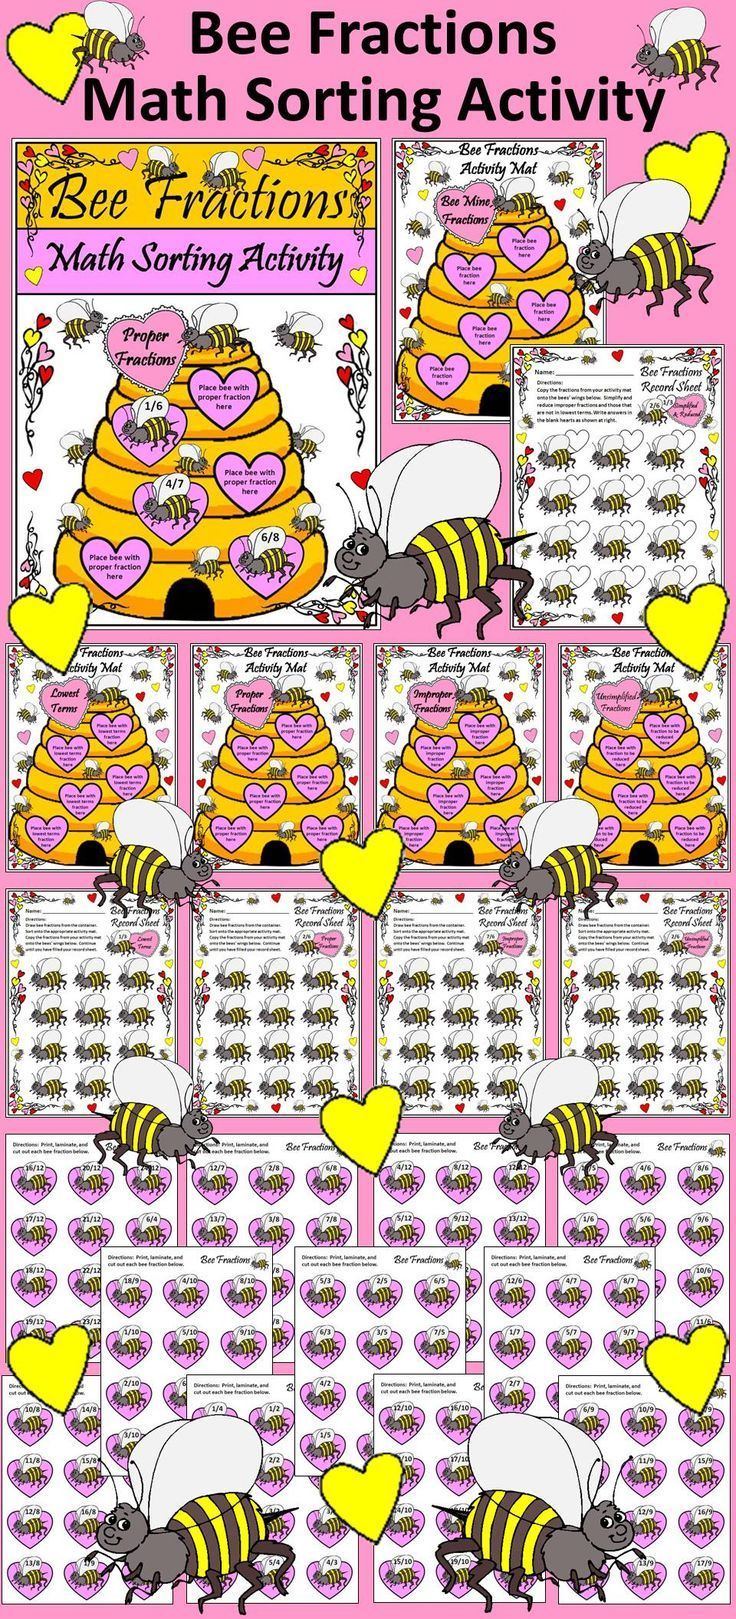 Bee Fractions Math Sorting Activity: This Valentine's Day Math center activity reinforces the difference between proper, improper, simplified, unsimplified, and lowest terms fractions.  Contents include: * 5 Different Valentine's Day Math Bee Fractions Ac